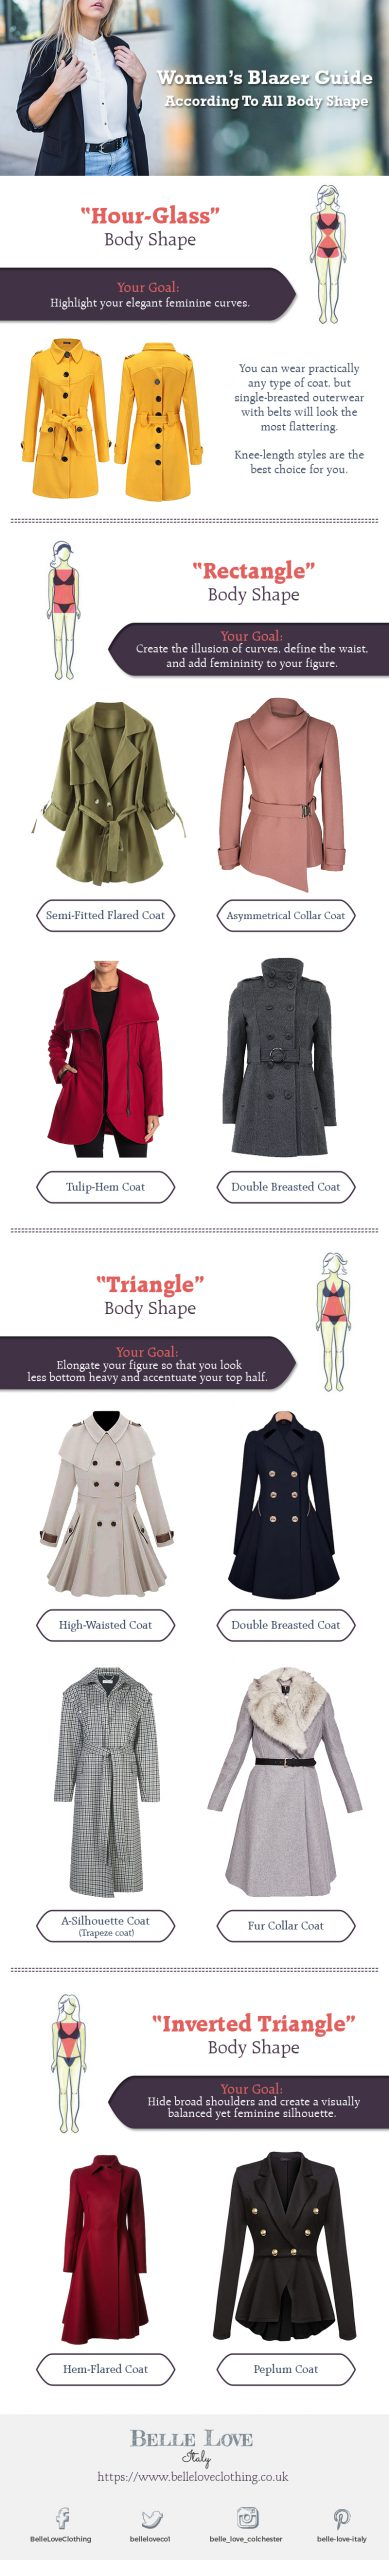 Womens Blazer Guide According to ALL Body Shape scaled